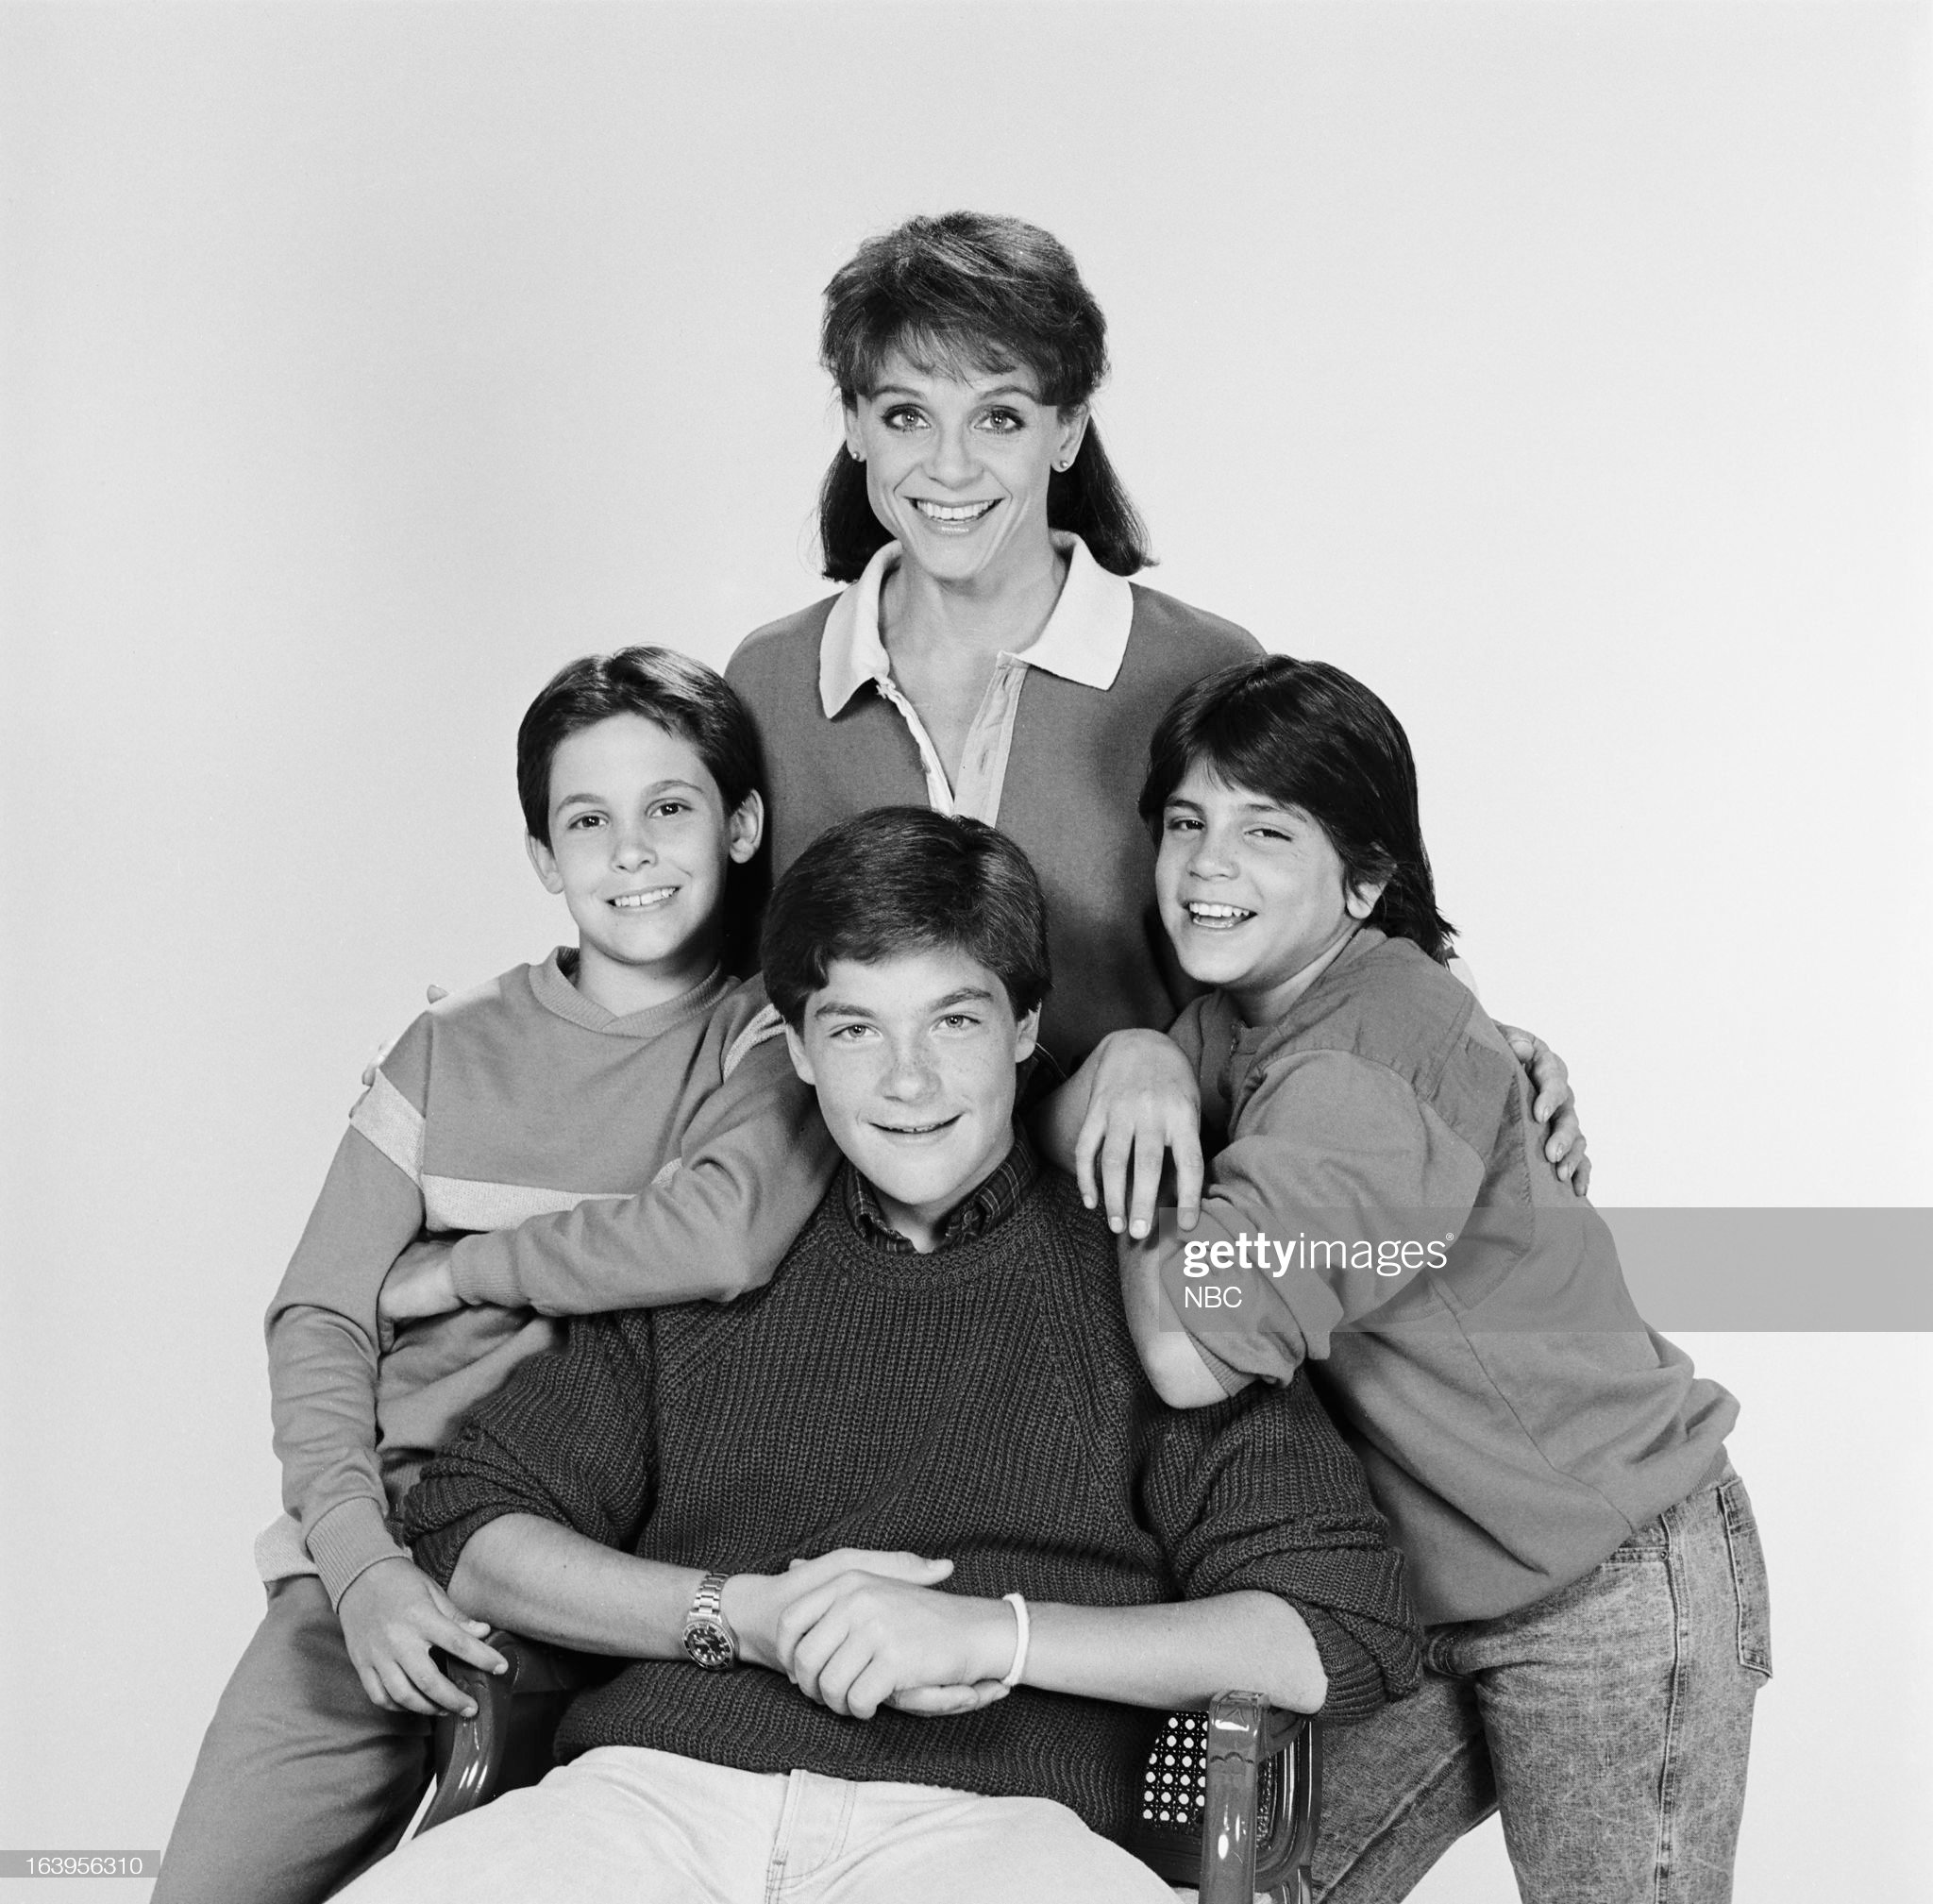 season-1-pictured-valerie-harper-as-valerie-hogan-danny-ponce-as-picture-id163956310